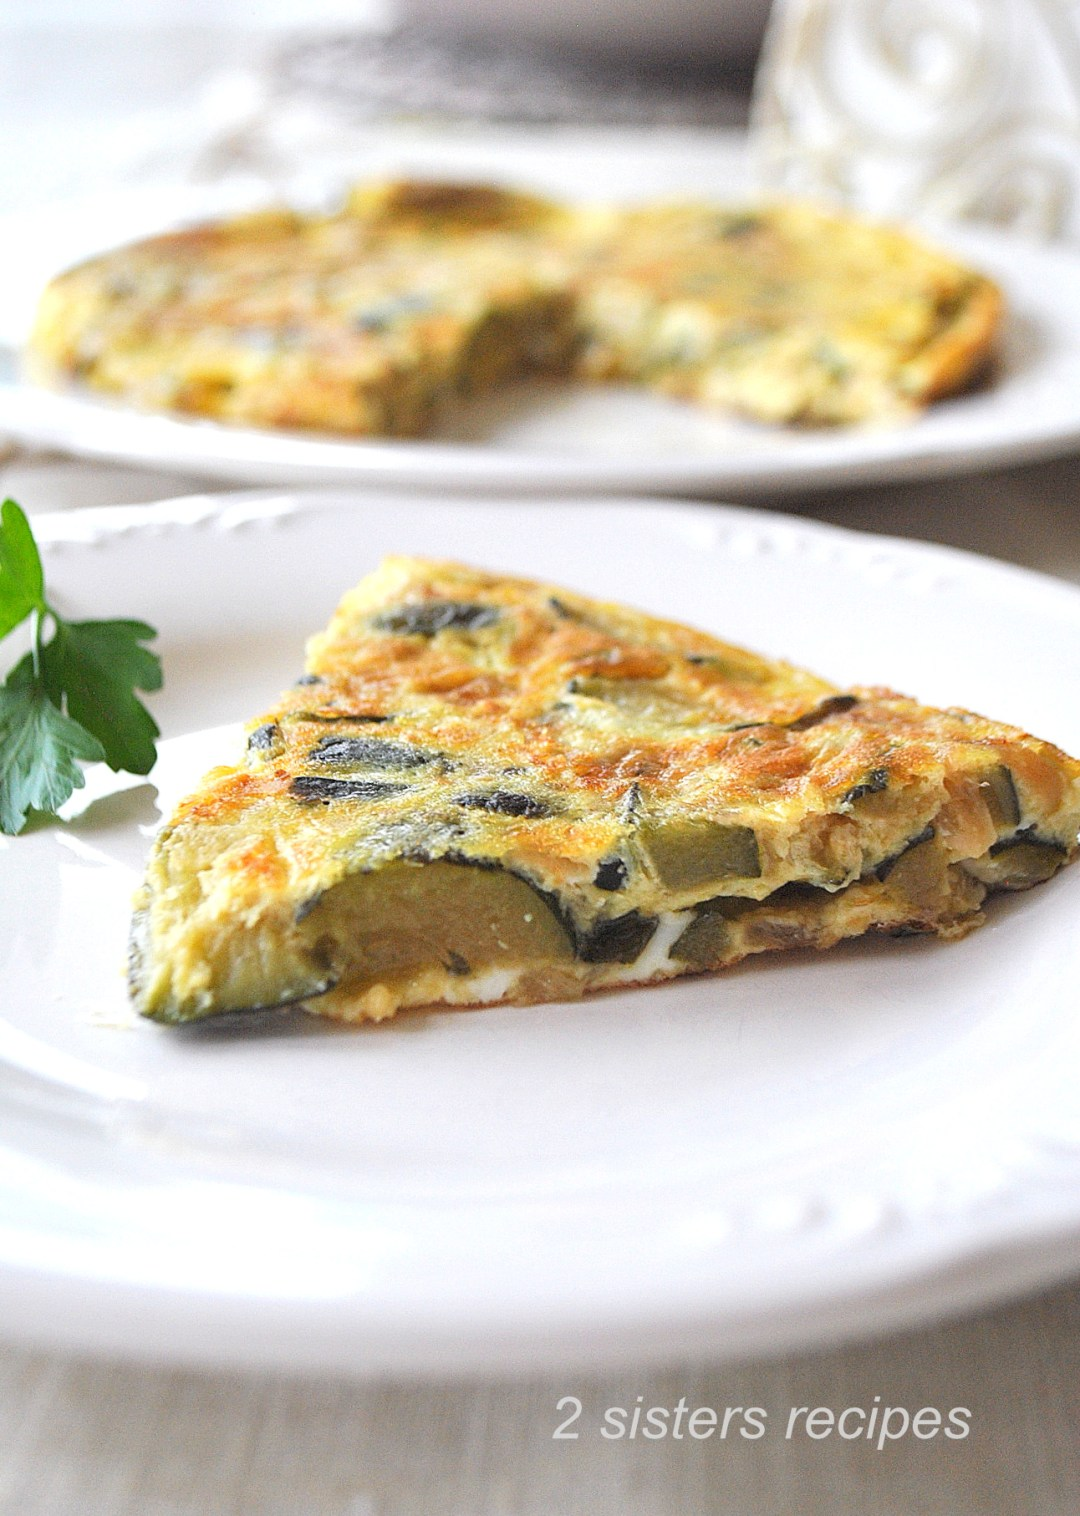 Mom's Best Zucchini Omelet by 2sistersrecipes.com